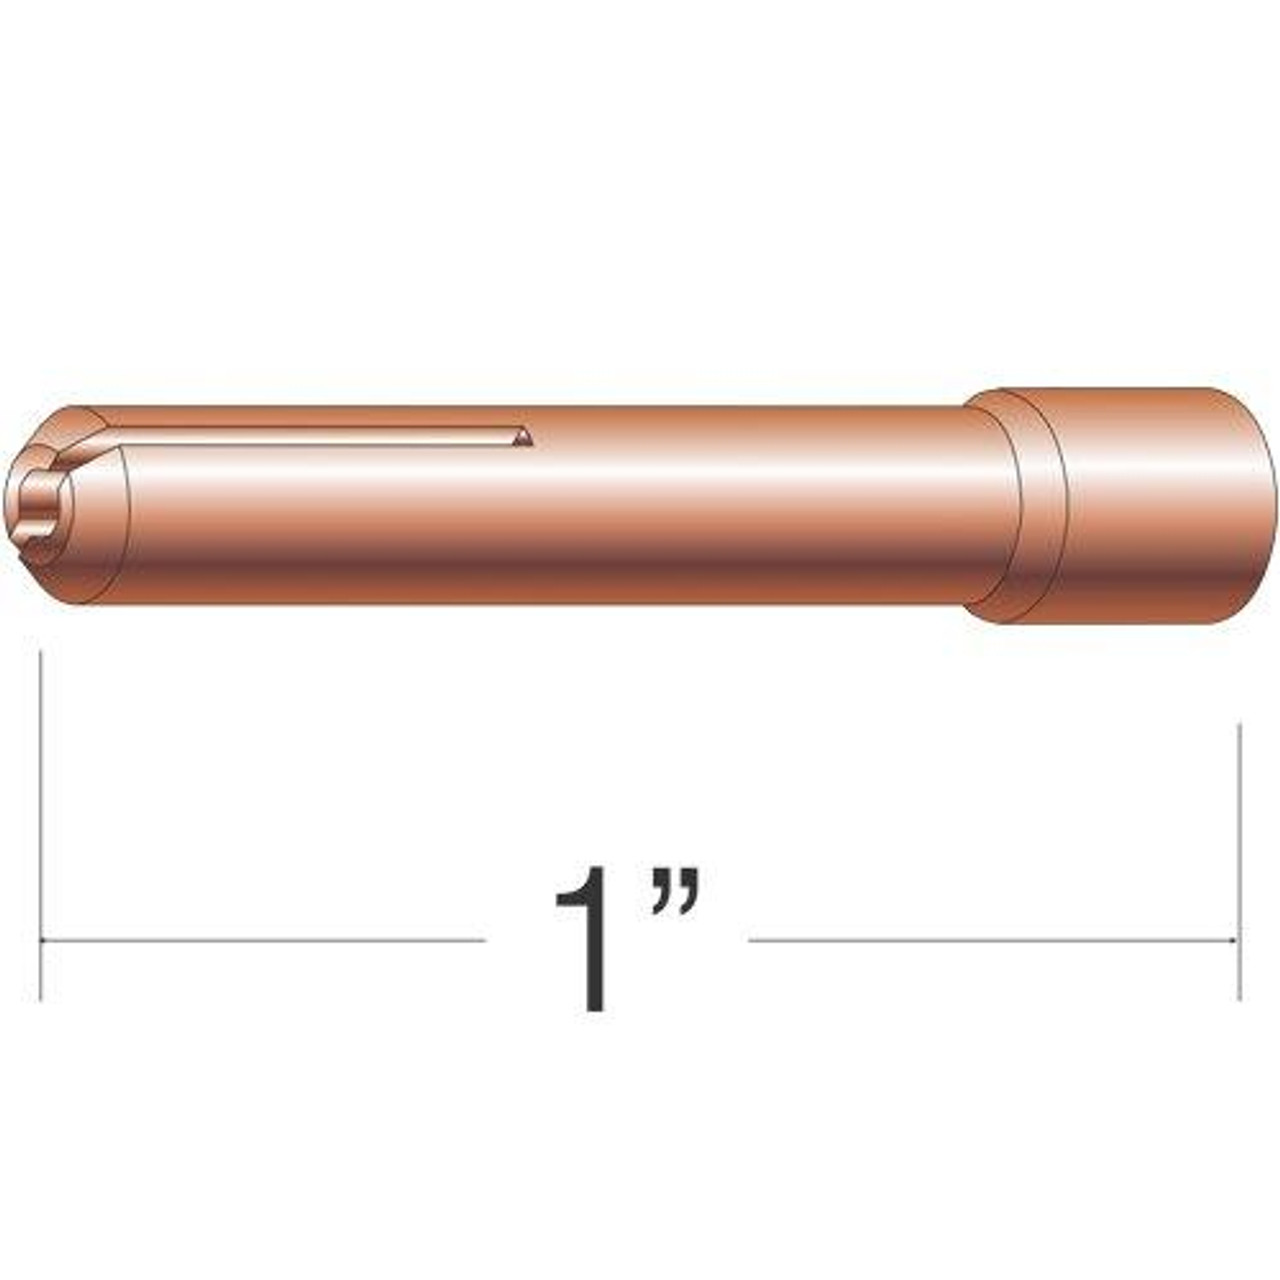 Profax 13N23 Collet 3/32 for 9-20-25 Series TIG Torches - 10 Pack